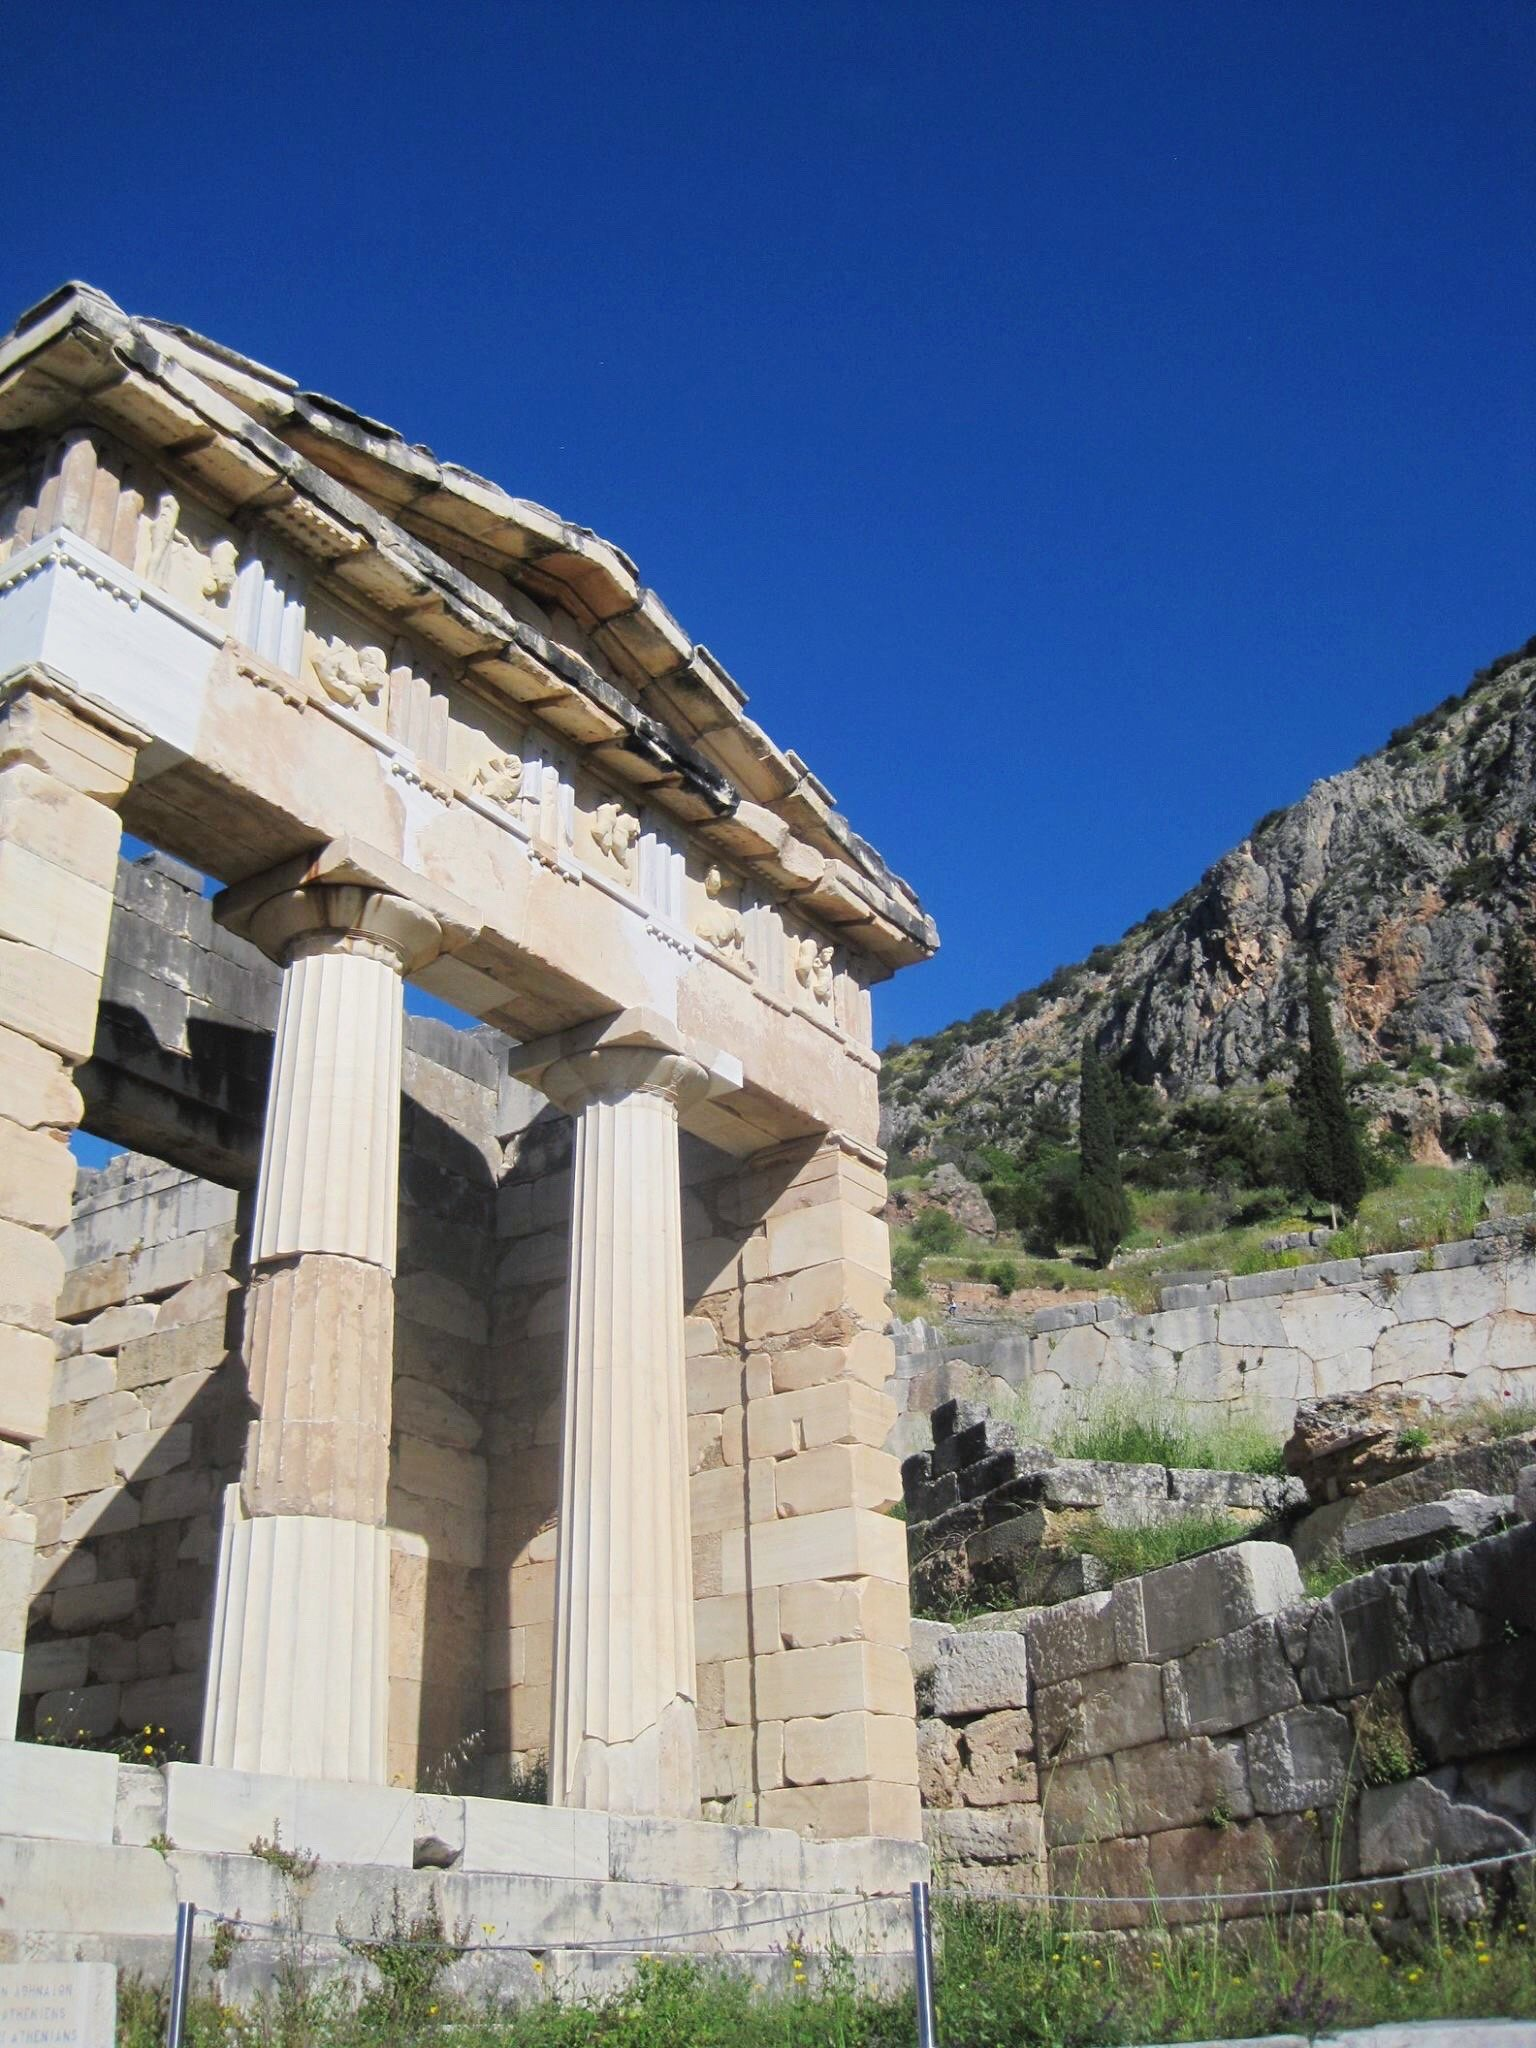 The Athenian Treasury | Delphi: The Bellybutton of the Ancient World | www.herlifeinruins.com